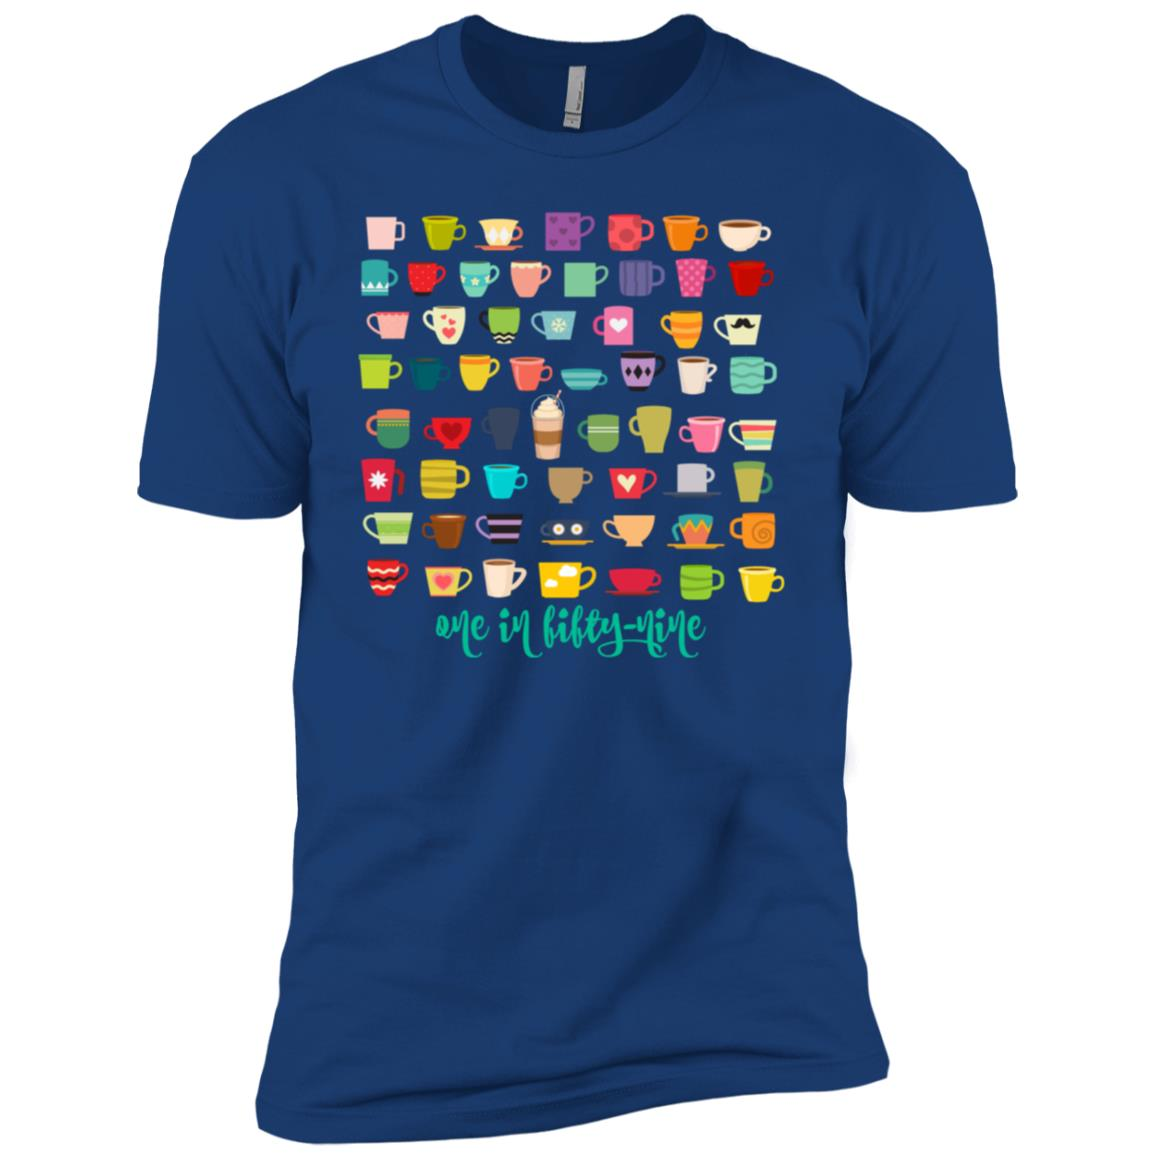 Cdc reported autism rate is 1 in 59. #nomorepuzzlepieces-2 Men Short Sleeve T-Shirt